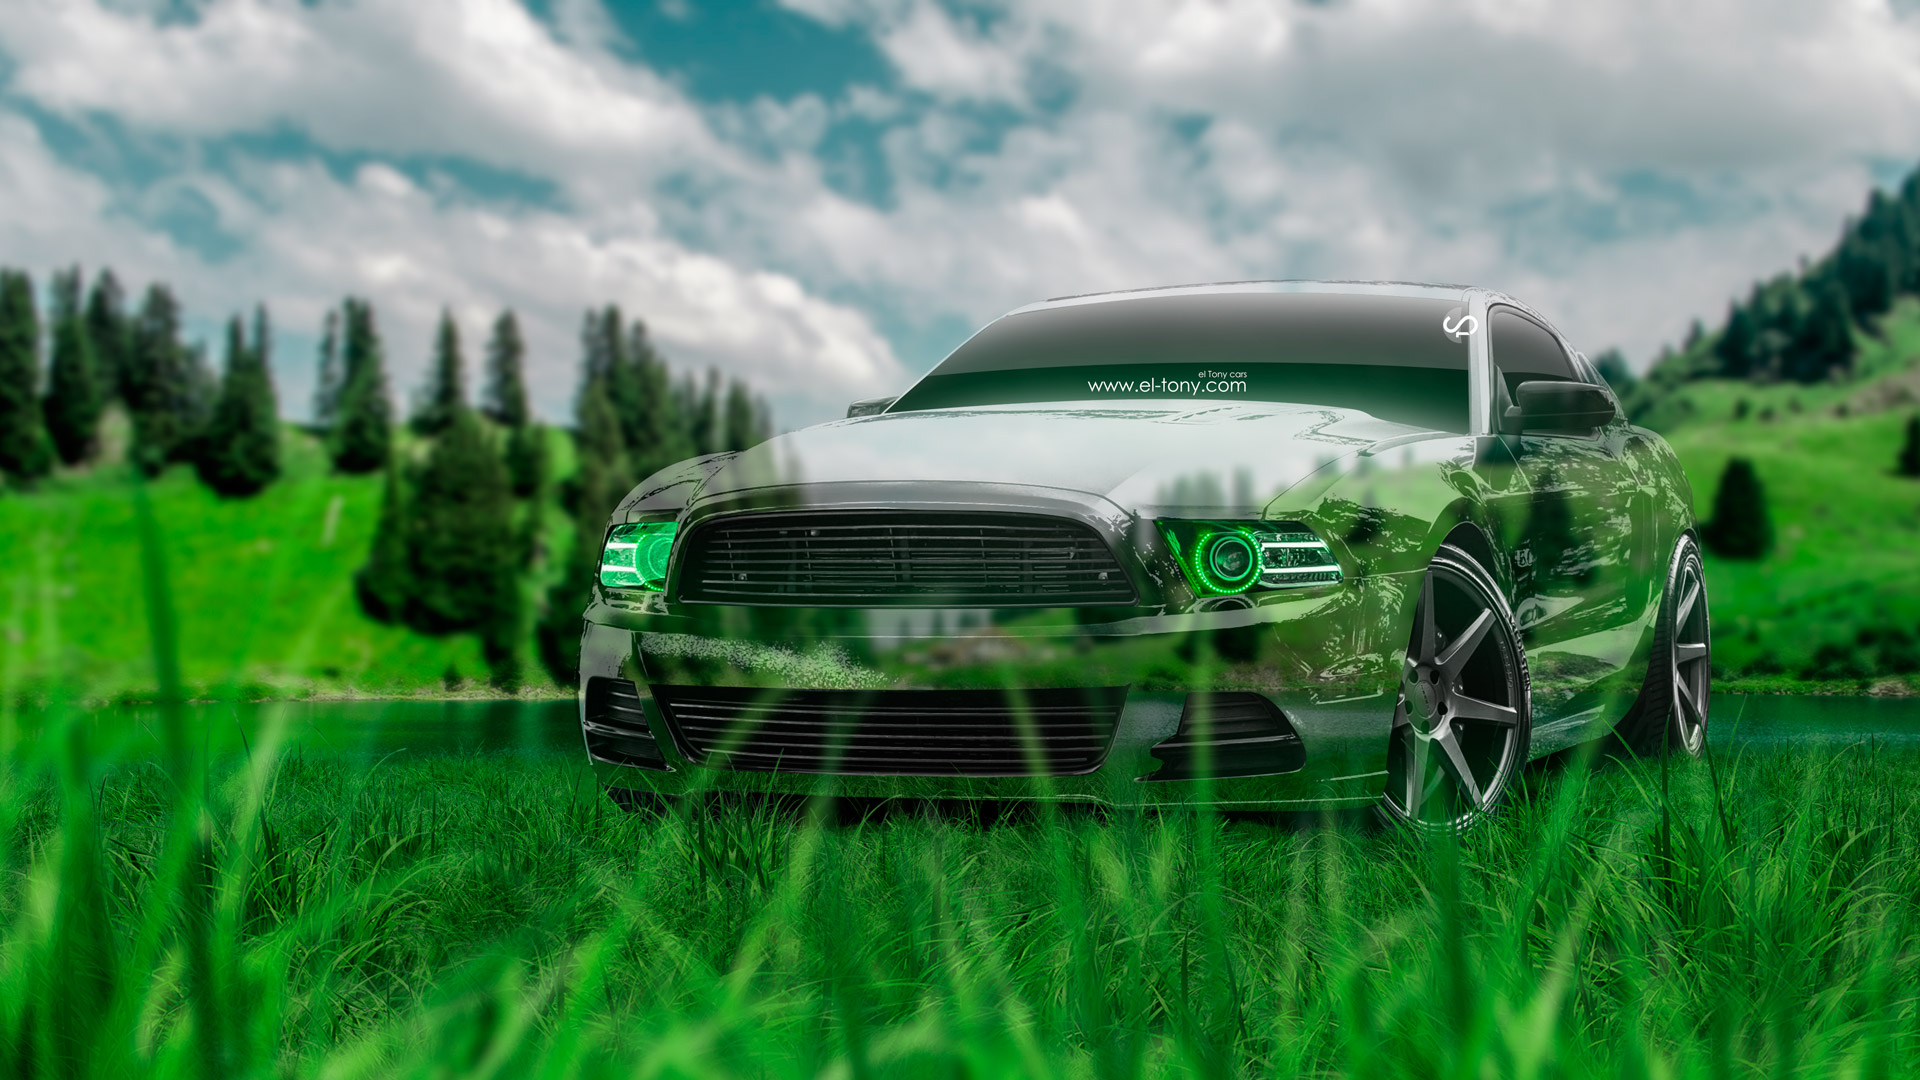 Exceptionnel Ford Mustang GT Muscle Crystal Nature Car 2014